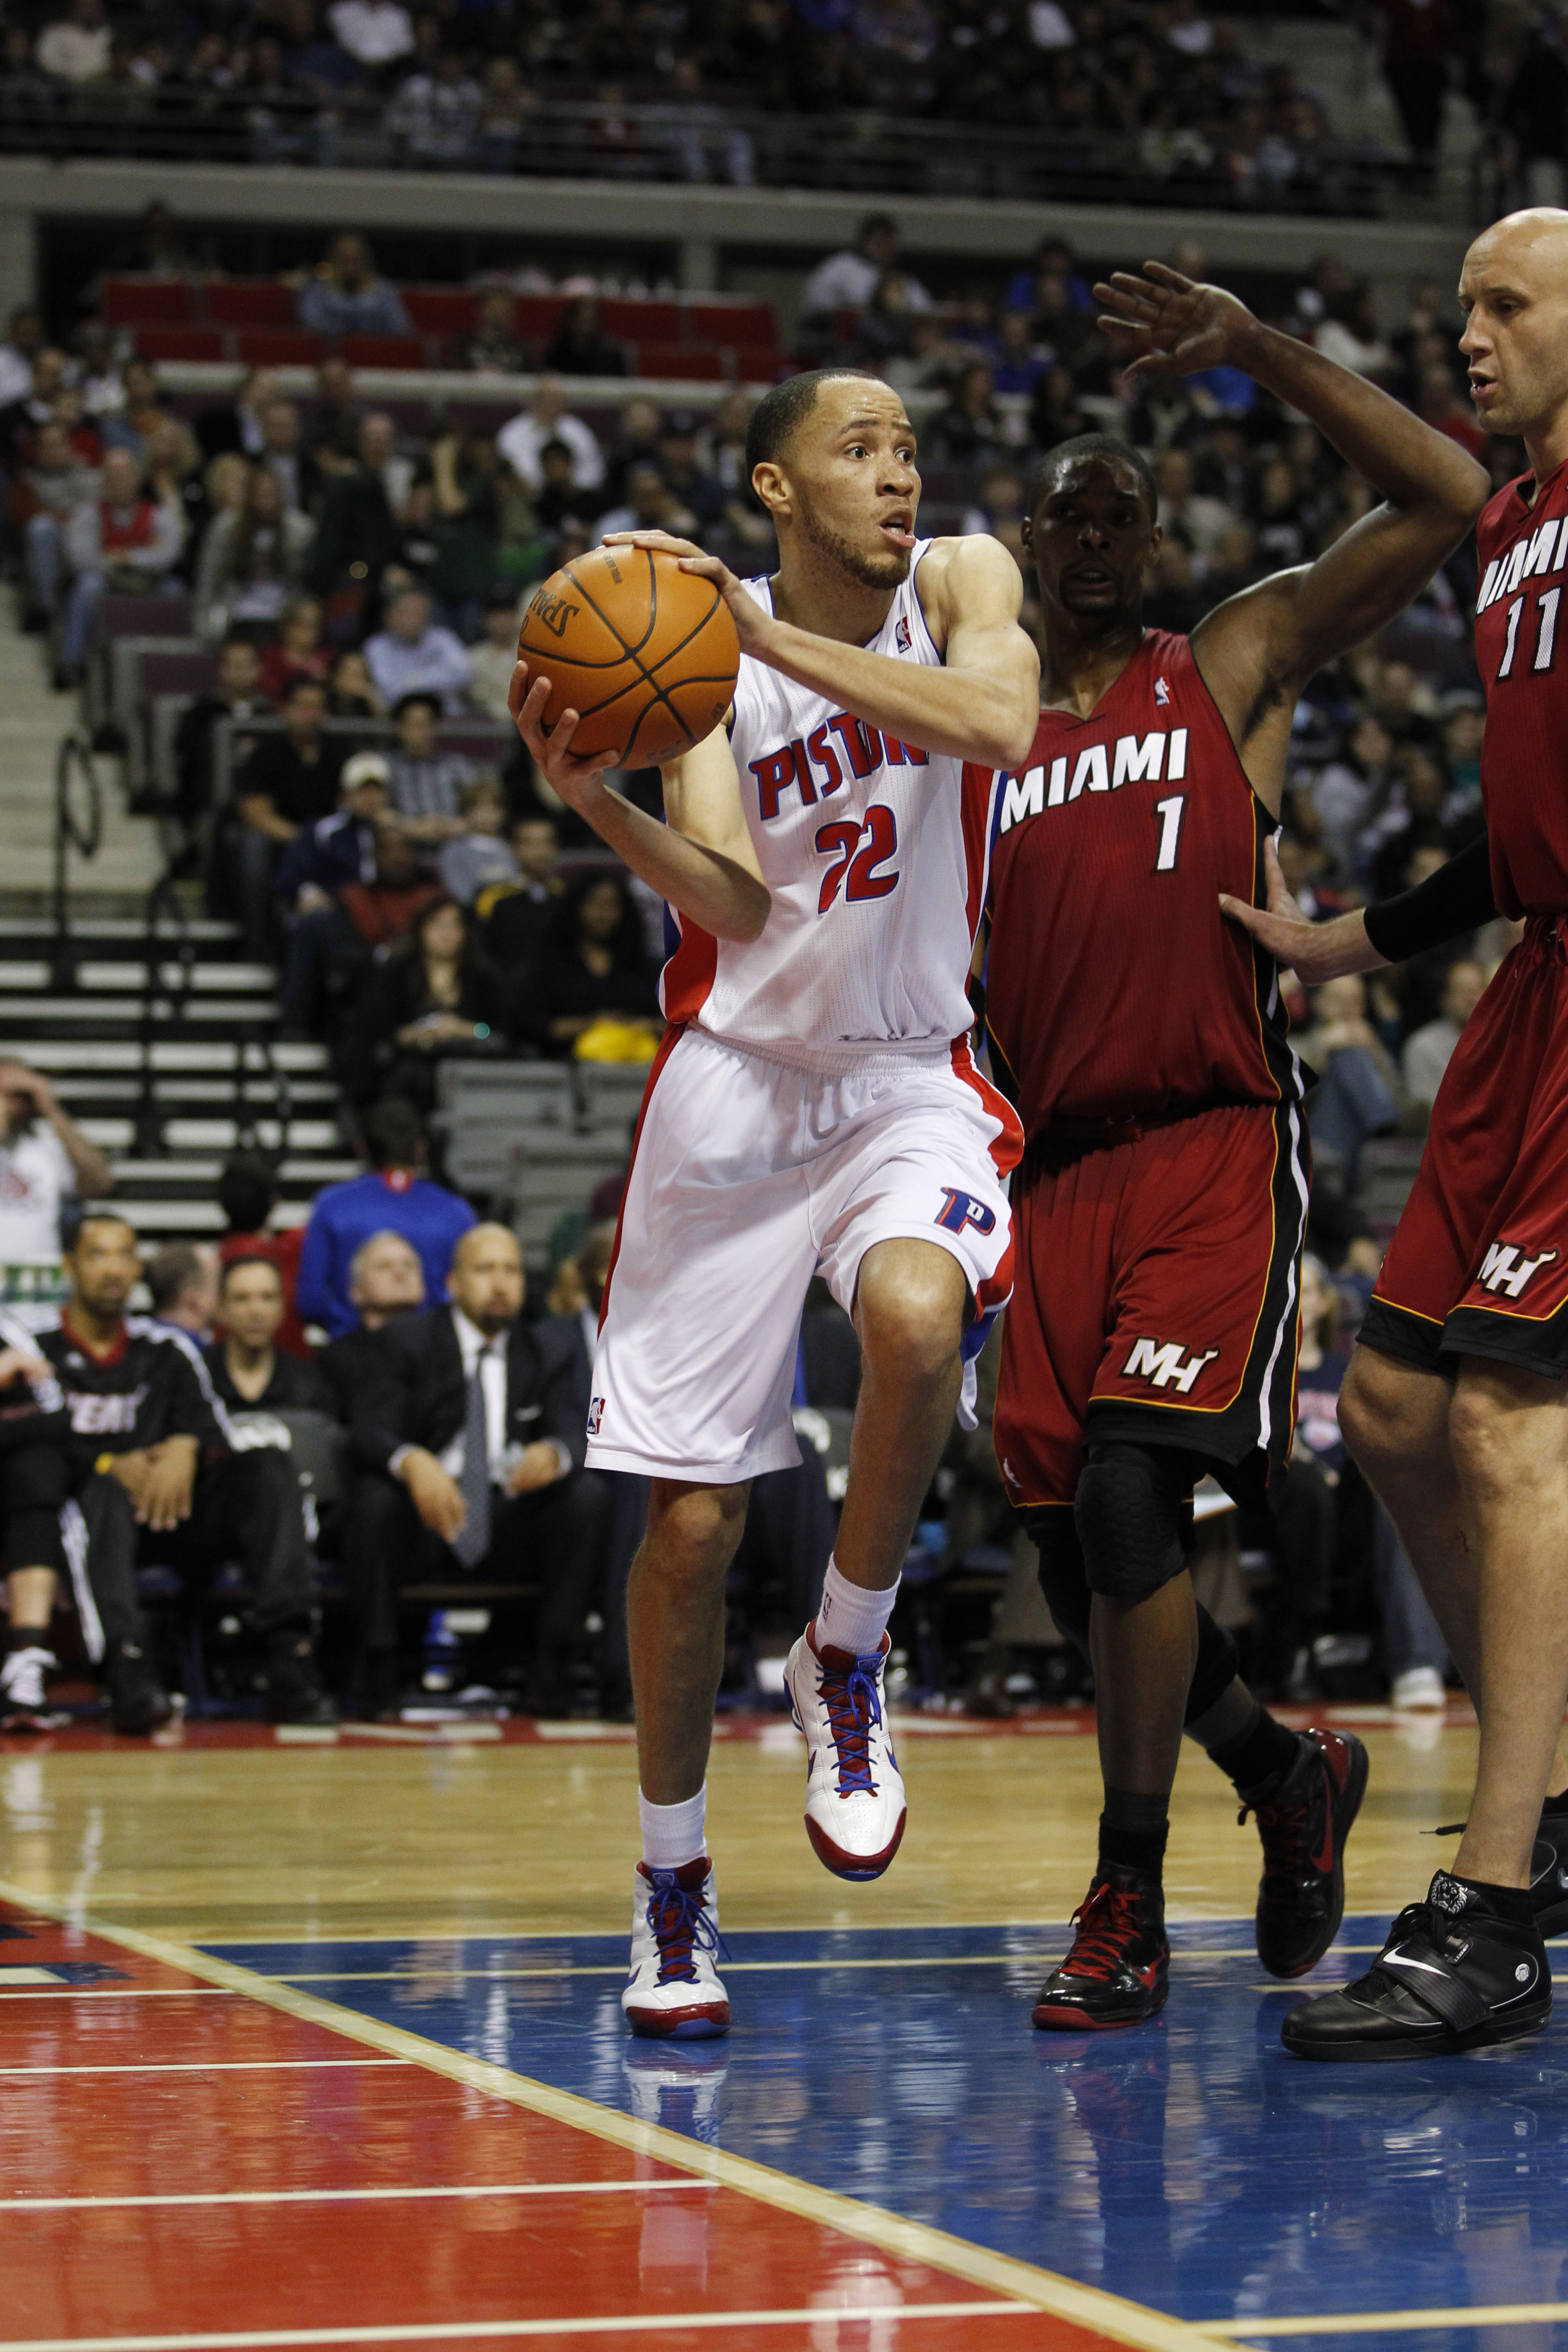 AUBURN HILLS, MI - FEBRUARY 11:  Tayshaun Prince #22 of the Detroit Pistons llooks to pass while playing the Miami Heat at The Palace of Auburn Hills on February 11, 2011 in Auburn Hills, Michigan. Miami won the game 106-92.  (Photo by Gregory Shamus/Gett